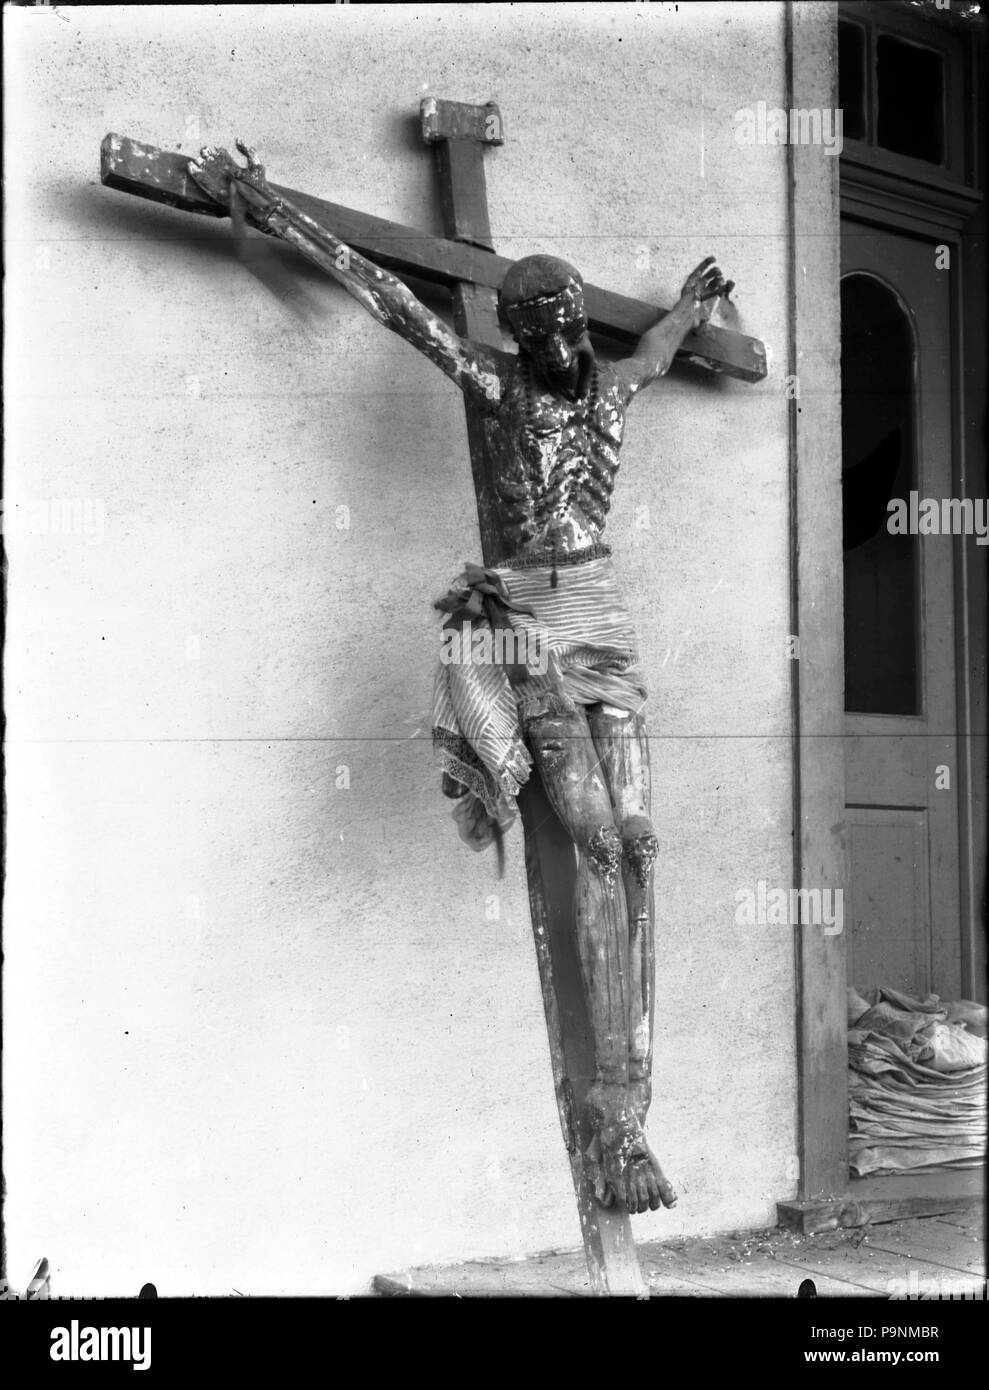 . English: A crucifix at Mission Santa Cruz, New Mexico, ca.1900 Photograph of a crucifix at Mission Santa Cruz, New Mexico, ca.1900. A large crucifix with Chist figure leans against and exterior wall. A cloth is tied around the loins of the figure. The cross stands on a wooden porch. A wood door is visible in the background near a pile of folded cloths.  Call number: CHS-4352 Legacy record ID: chs-m17091; USC-1-1-1-14102 Photographer: James, George Wharton Filename: CHS-4352 Coverage date: circa 1900 Part of collection: California Historical Society Collection, 1860-1960 Type: images; physica - Stock Image